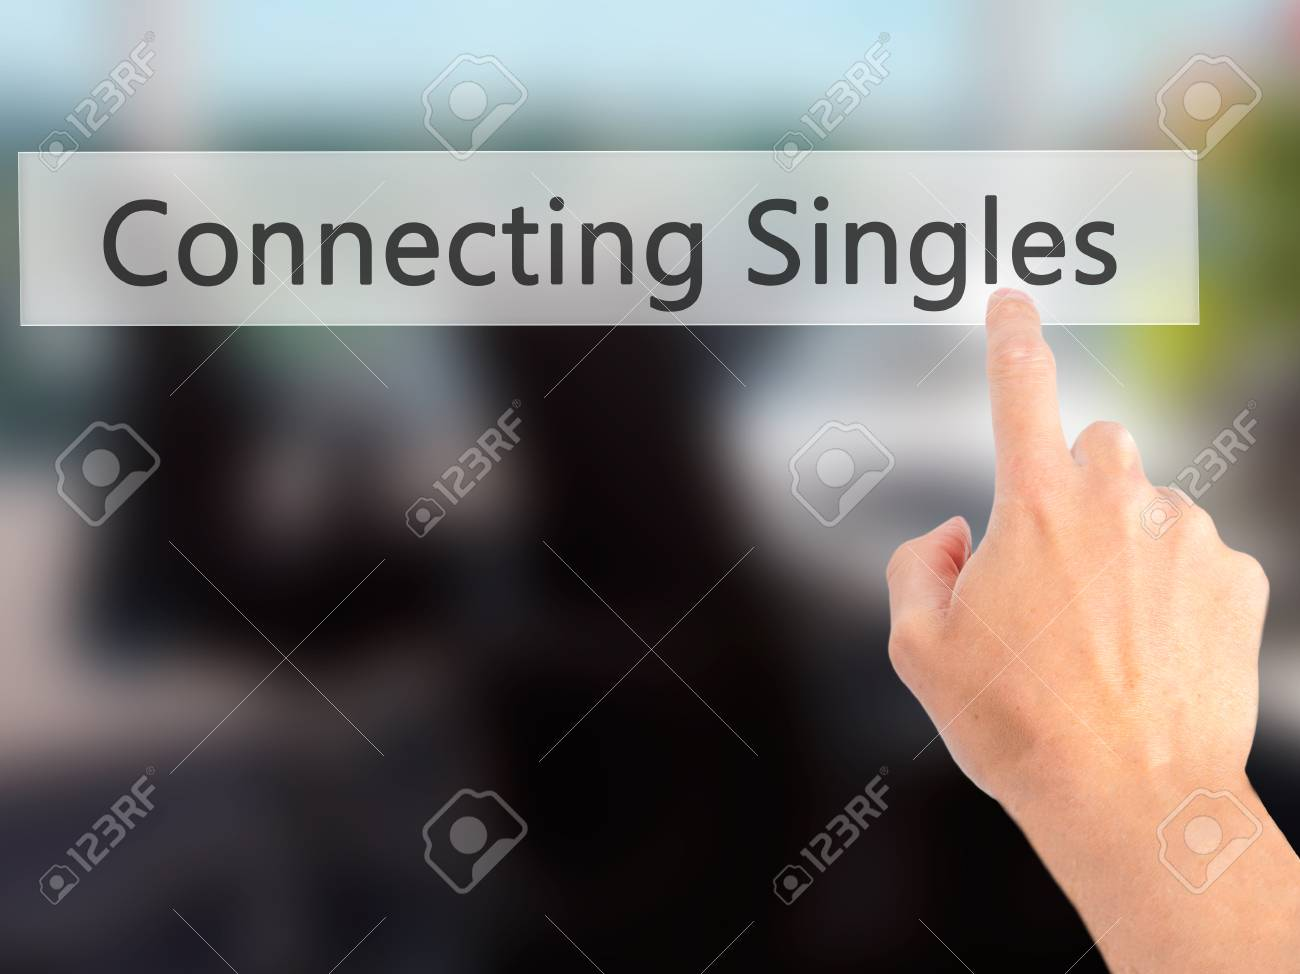 sign in connecting singles